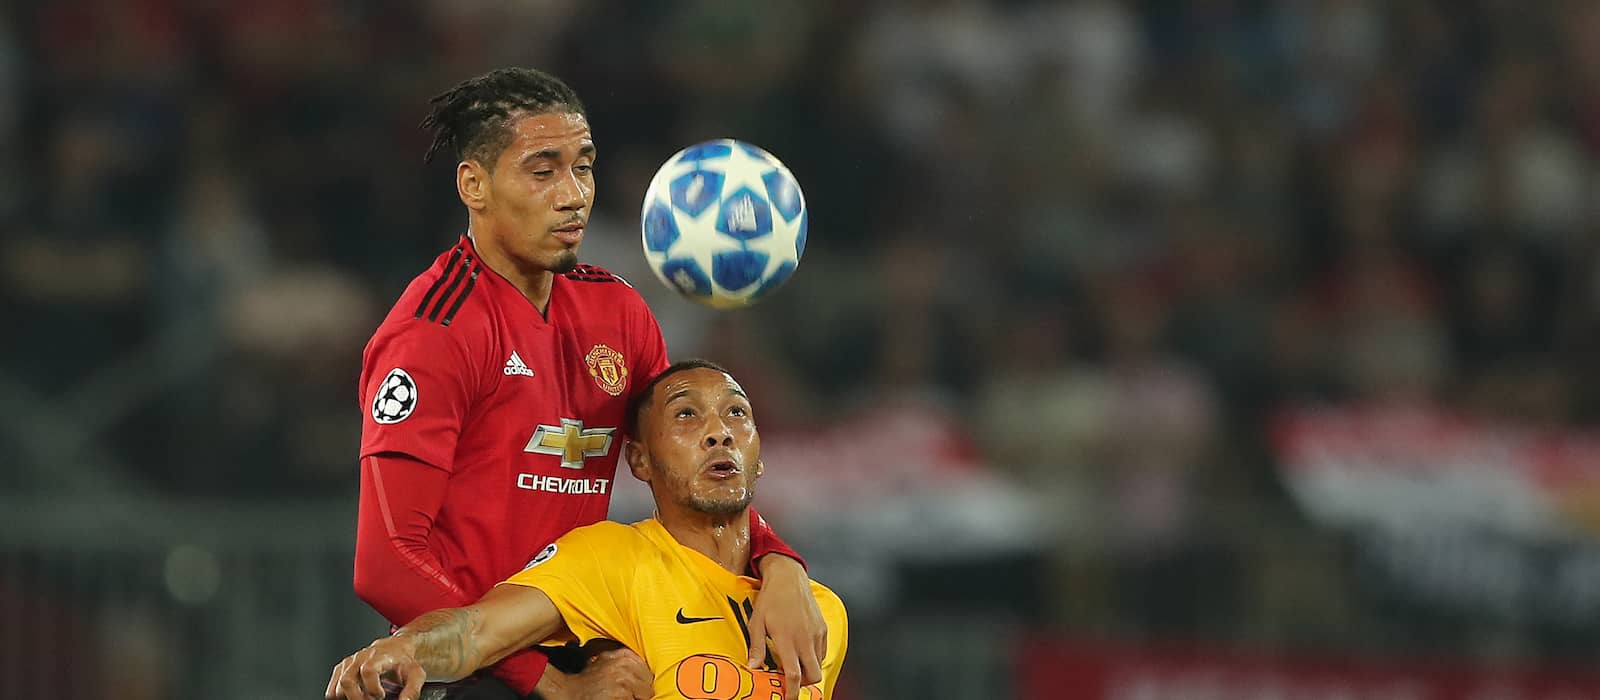 Manchester United's lack of quality in defence is huge problem for club, suggests Paul Scholes